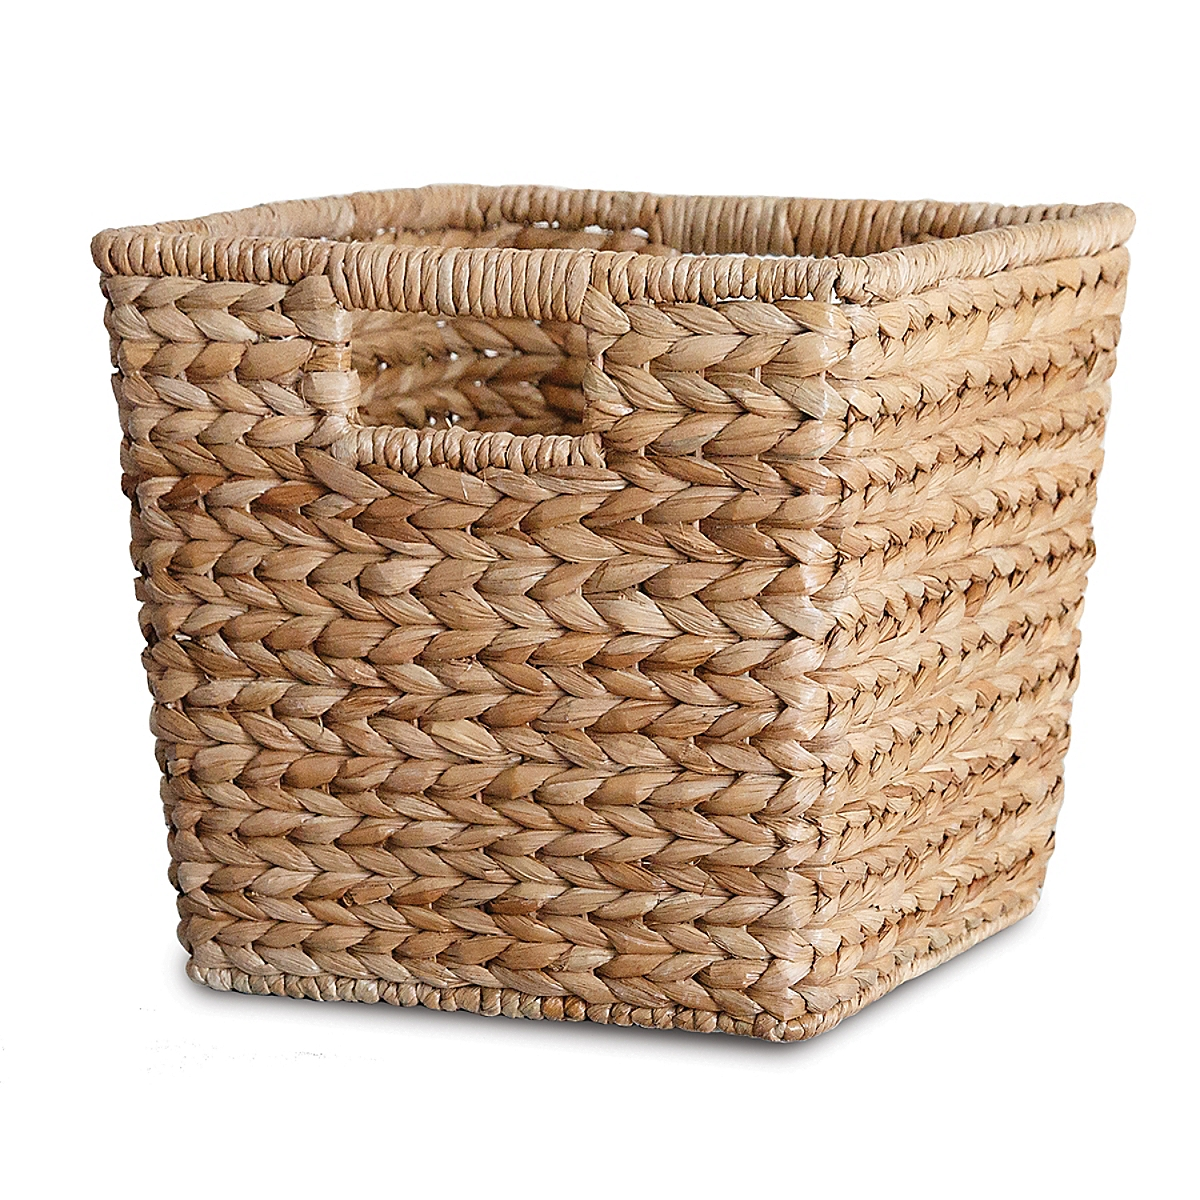 Stow-Away Basket - Natural